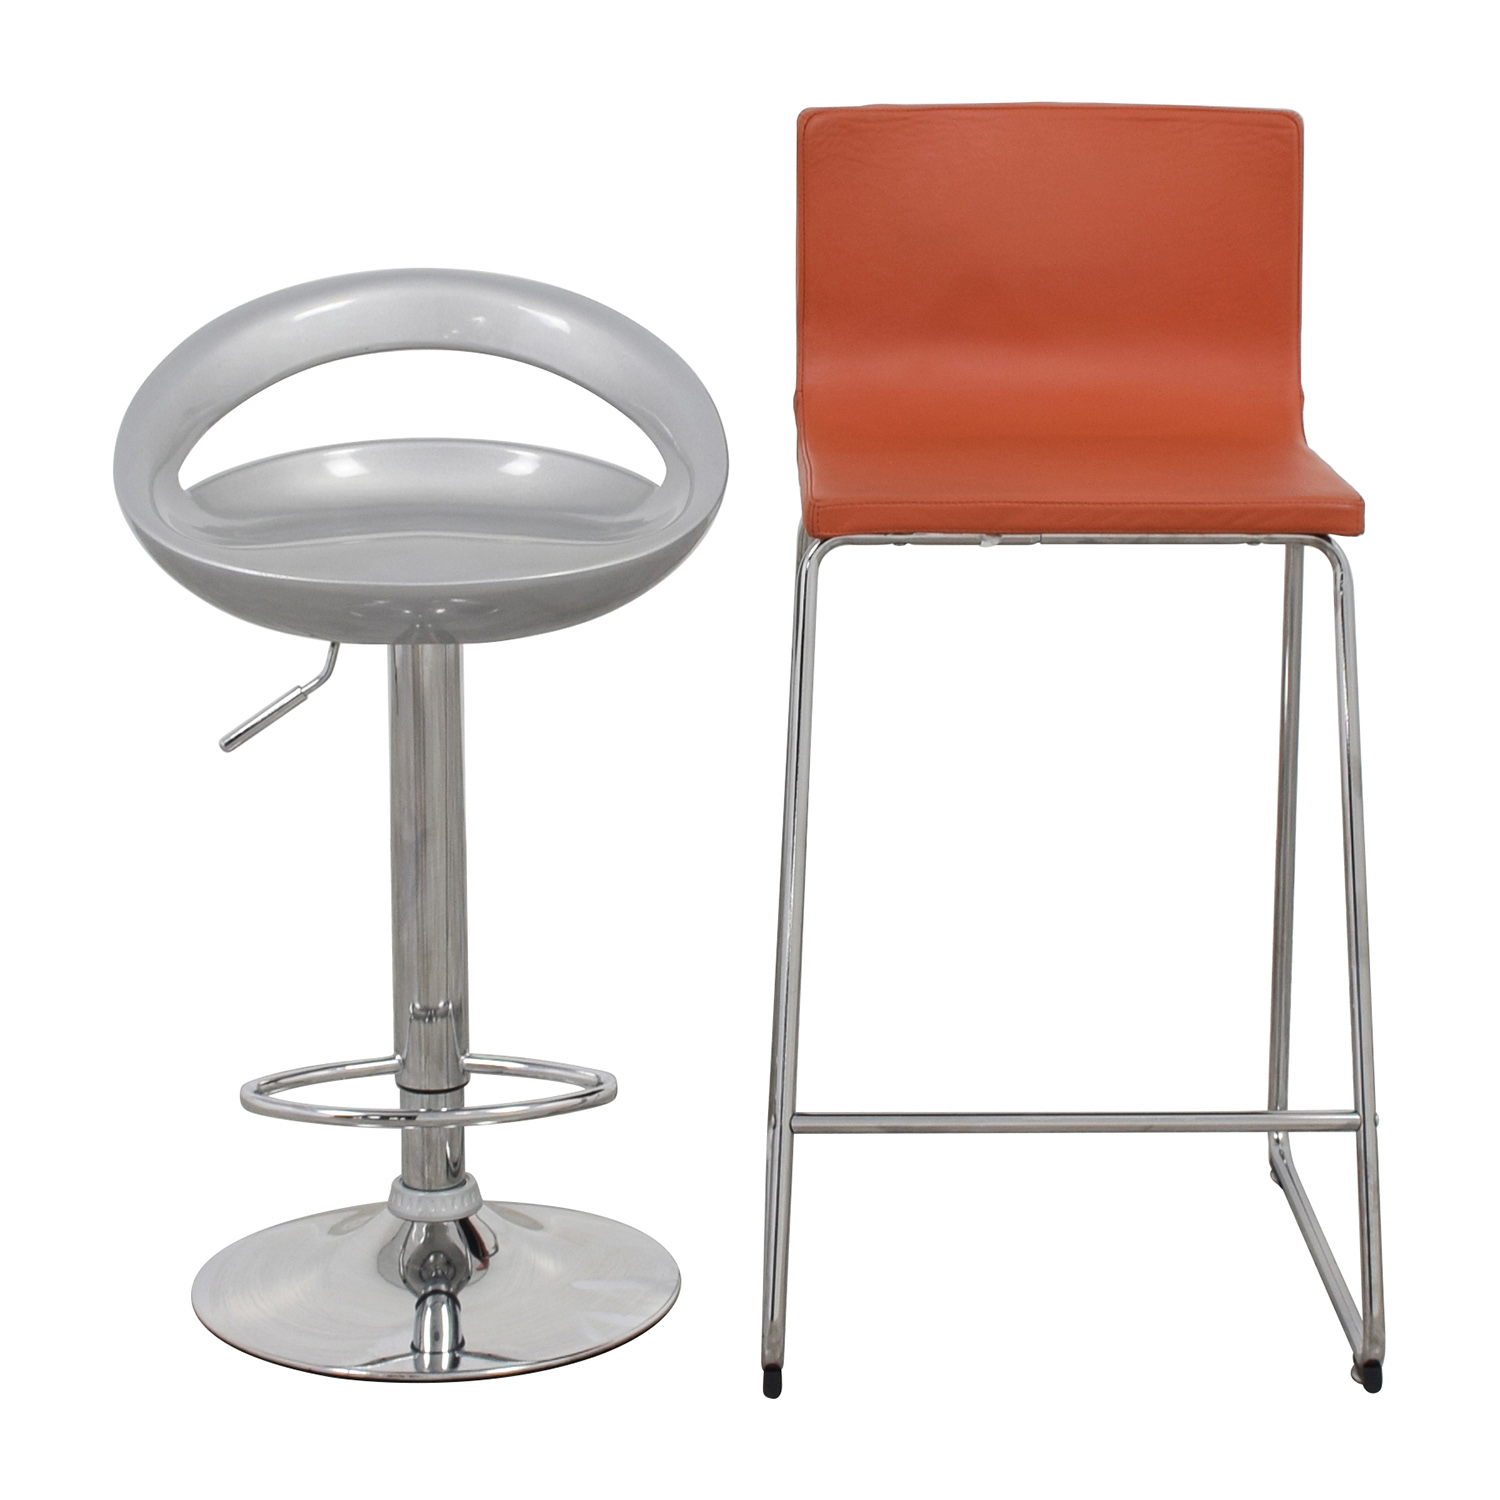 Pair of Modern Orange and Silver Bar Stools on sale